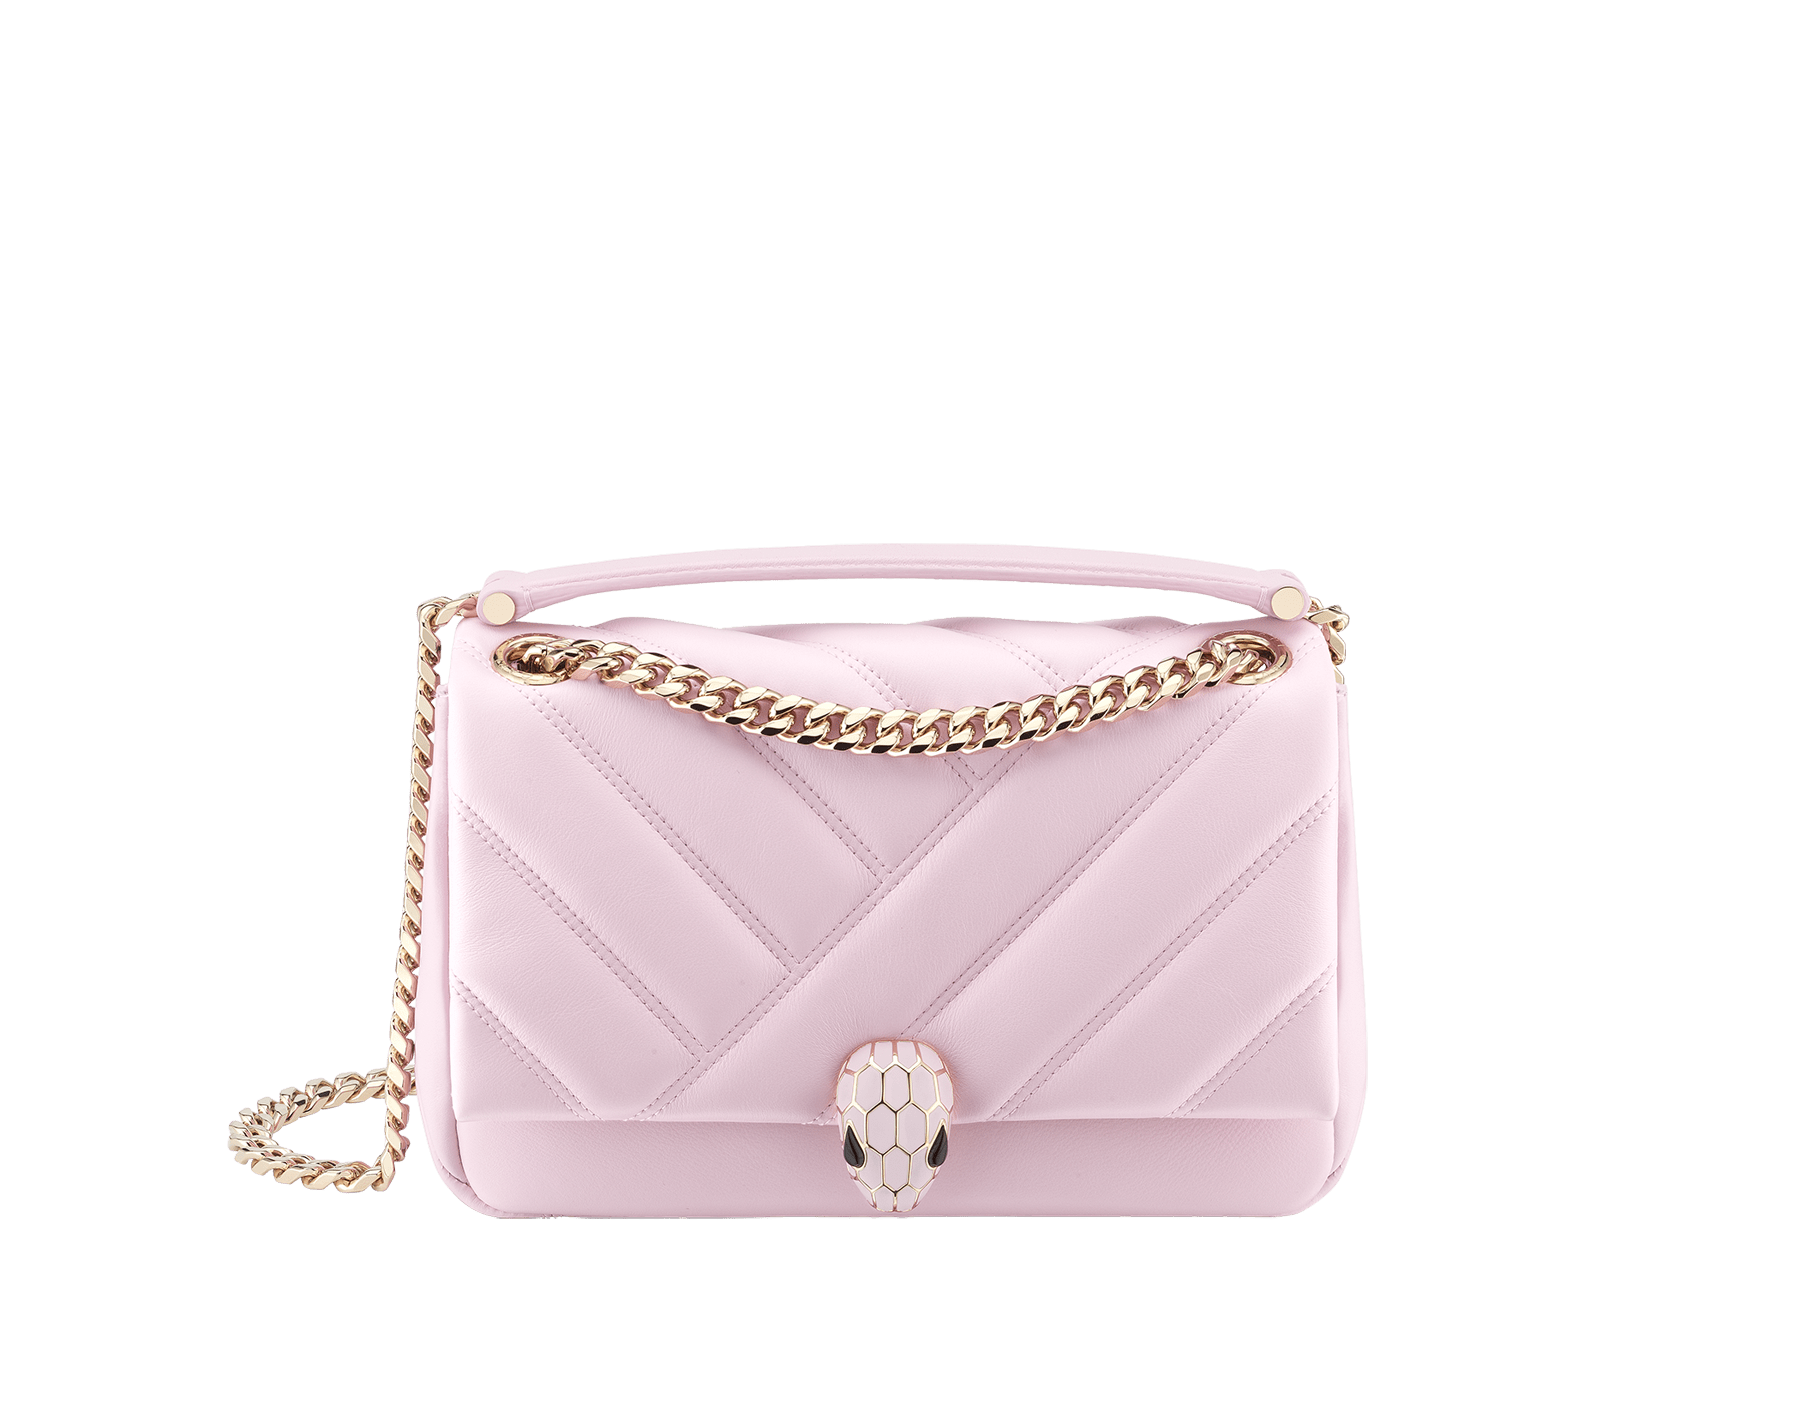 Serpenti Cabochon shoulder bag in soft matelassé rosa di francia nappa leather, with a graphic motif and rosa di francia calf leather. Brass light gold plated seductive snakehead closure in matt rosa di francia, shiny rosa di francia enamel and black onyx eyes. 288720 image 1